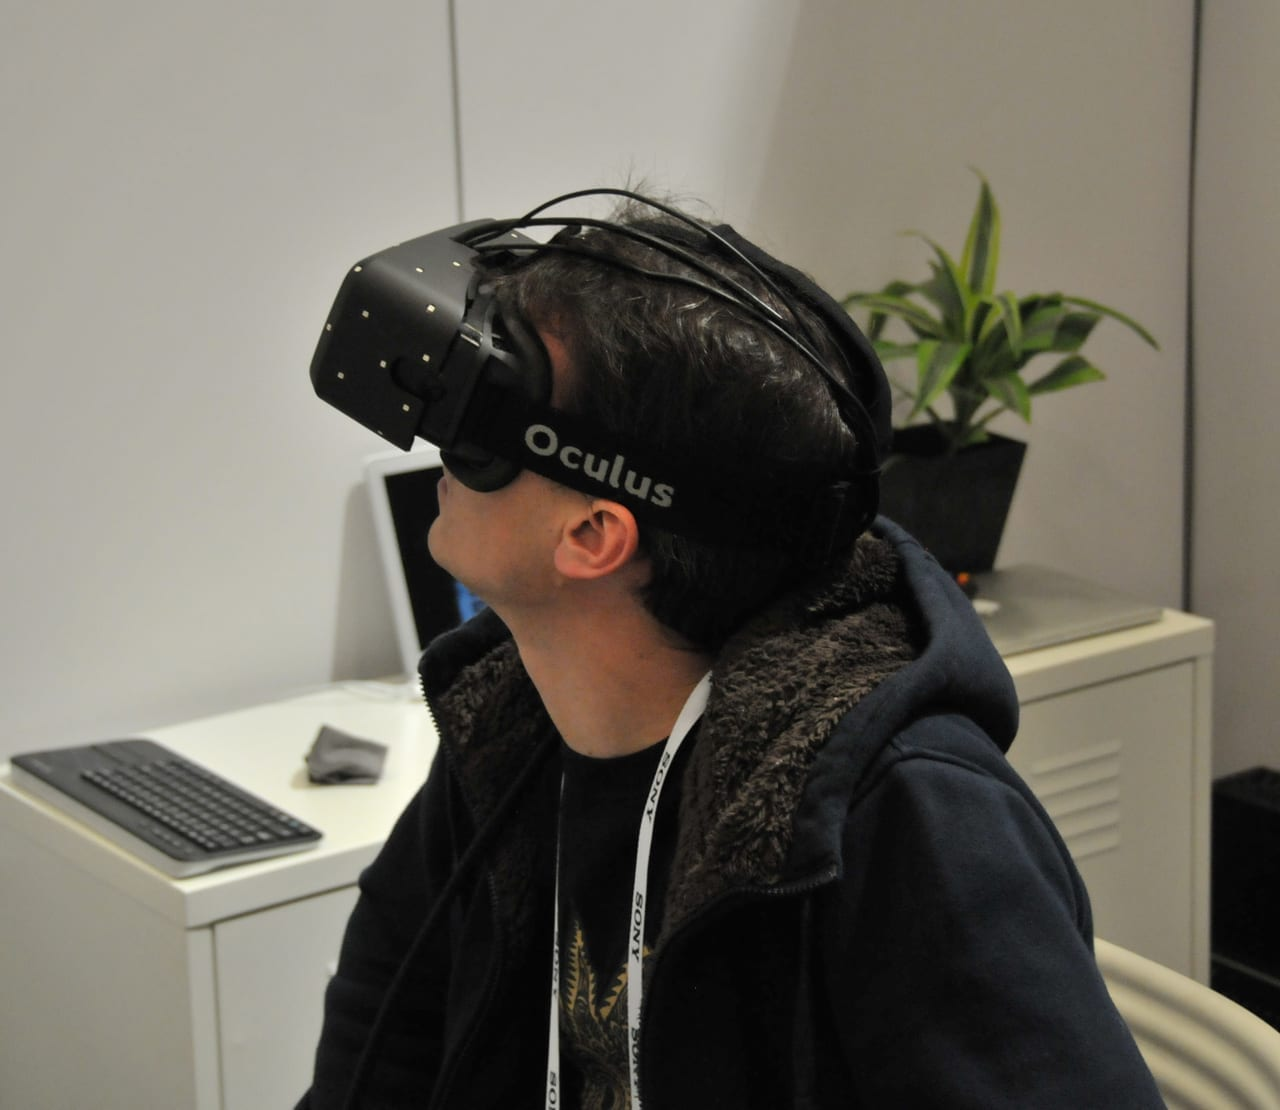 07064540-photo-oculus-rift-hd-4